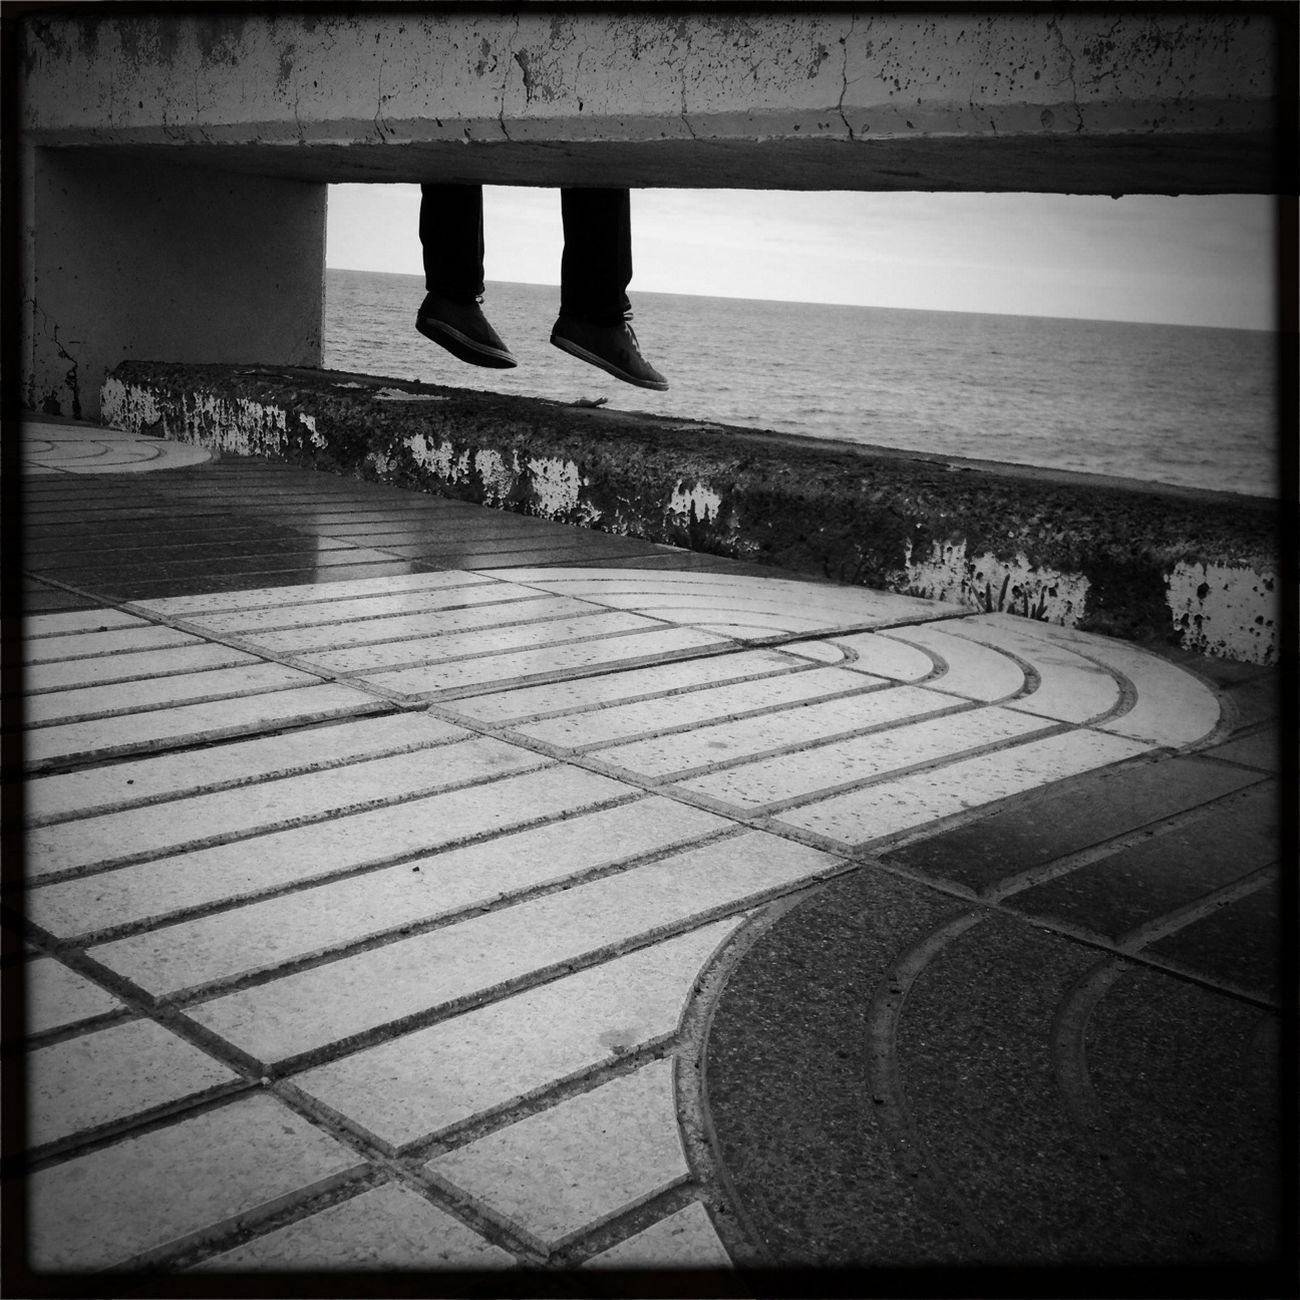 Hipstamatic Blackandwhite Other People's Shoes